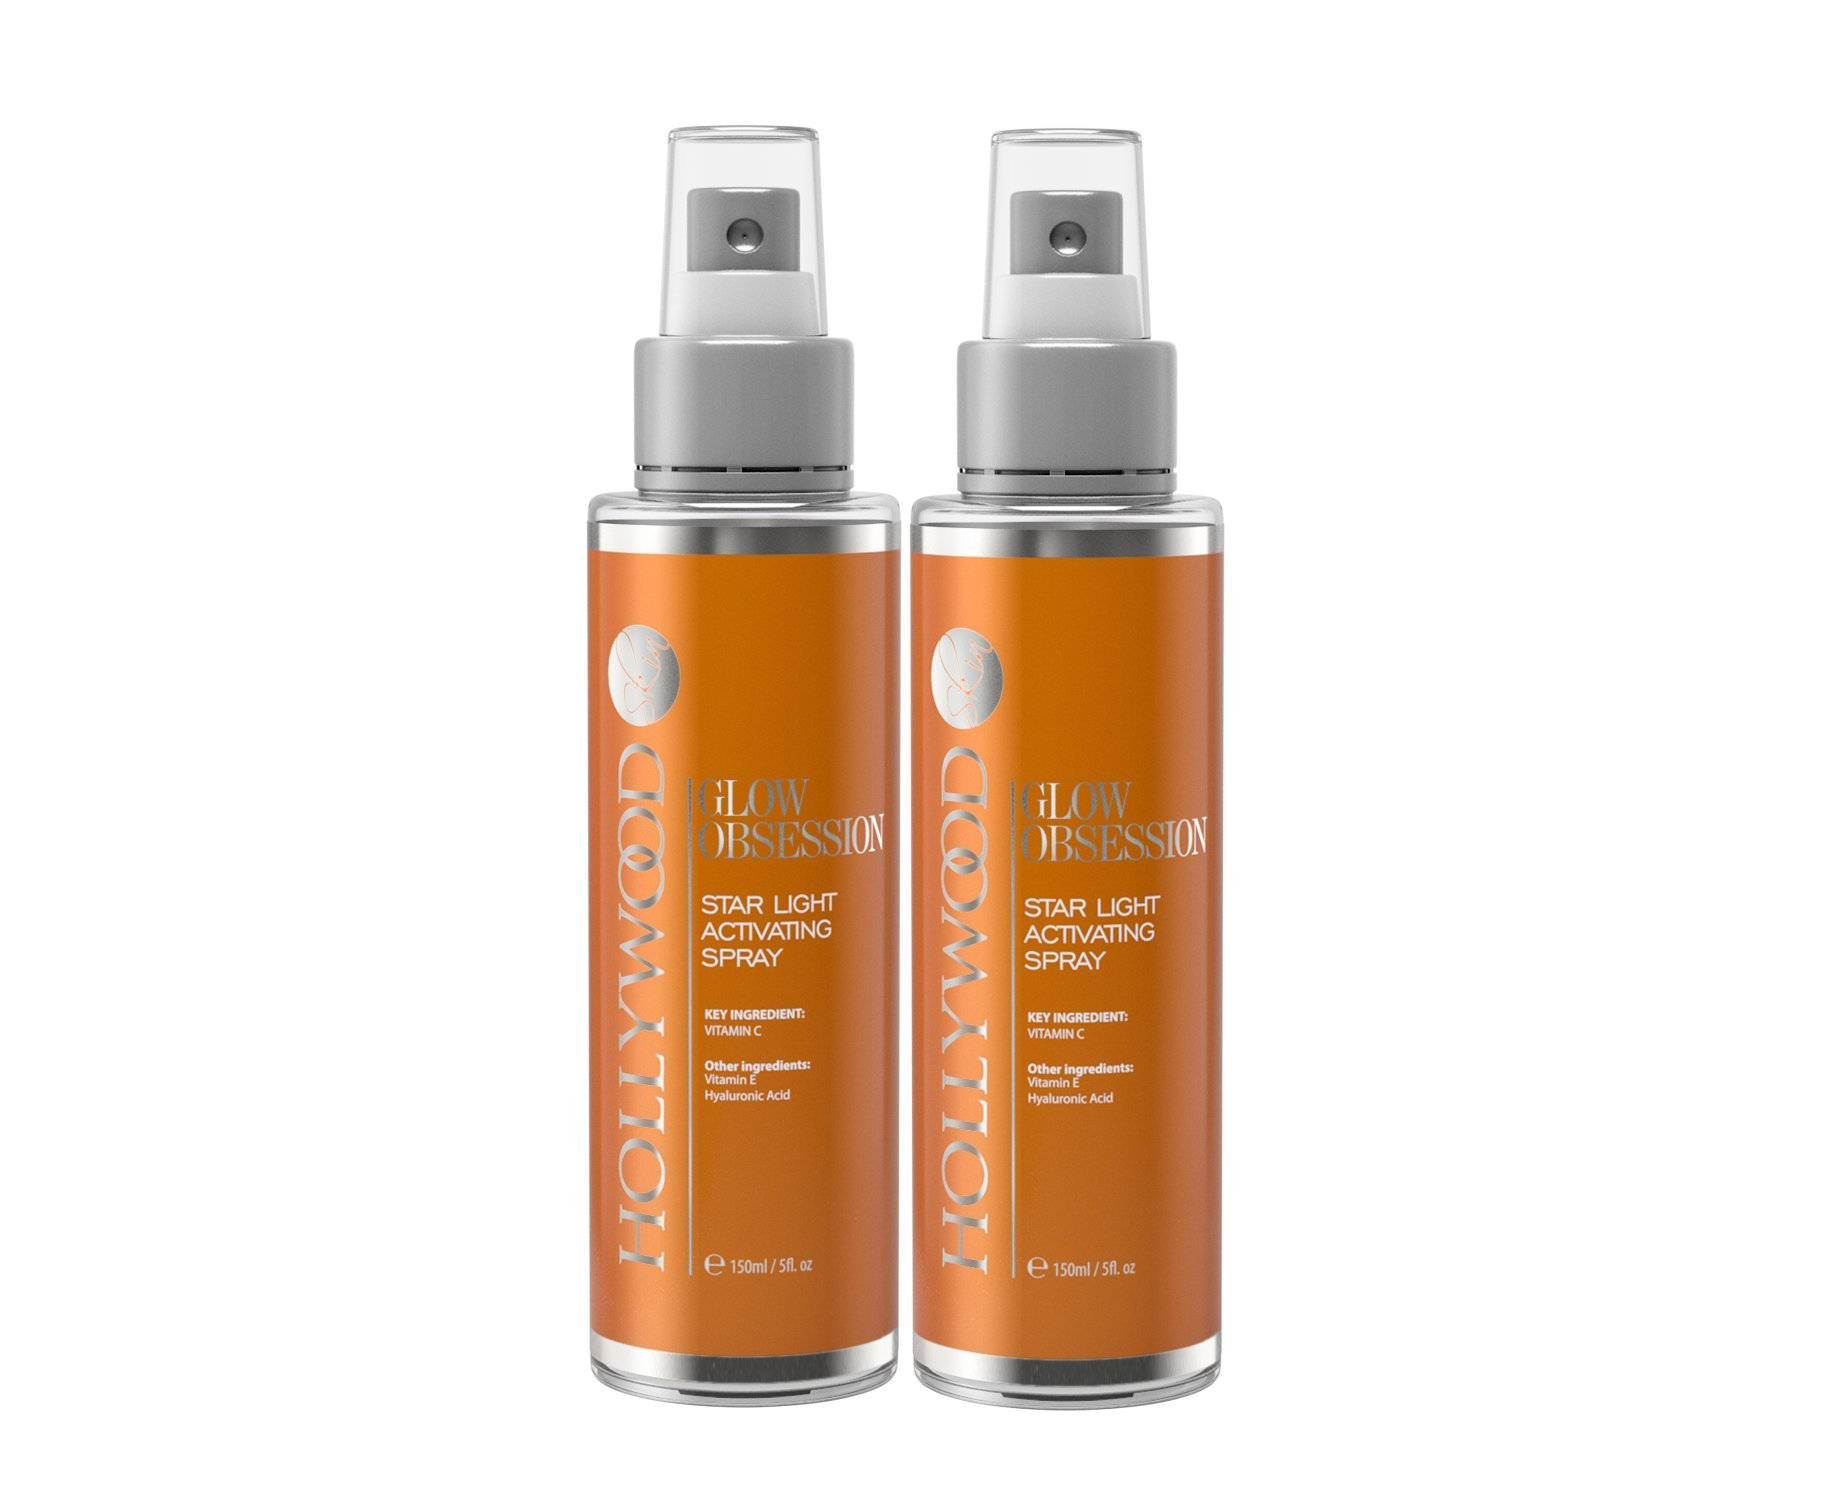 GLOW OBSESSION - 20% Vitamin C Facial Spray. Anti-aging and deeply moisturising. 4x STONGER than the competitors. With 10% Hyaluronic Acid, 1% Vitamin E + Witch Hazel. 150 ml (2 Bottles)